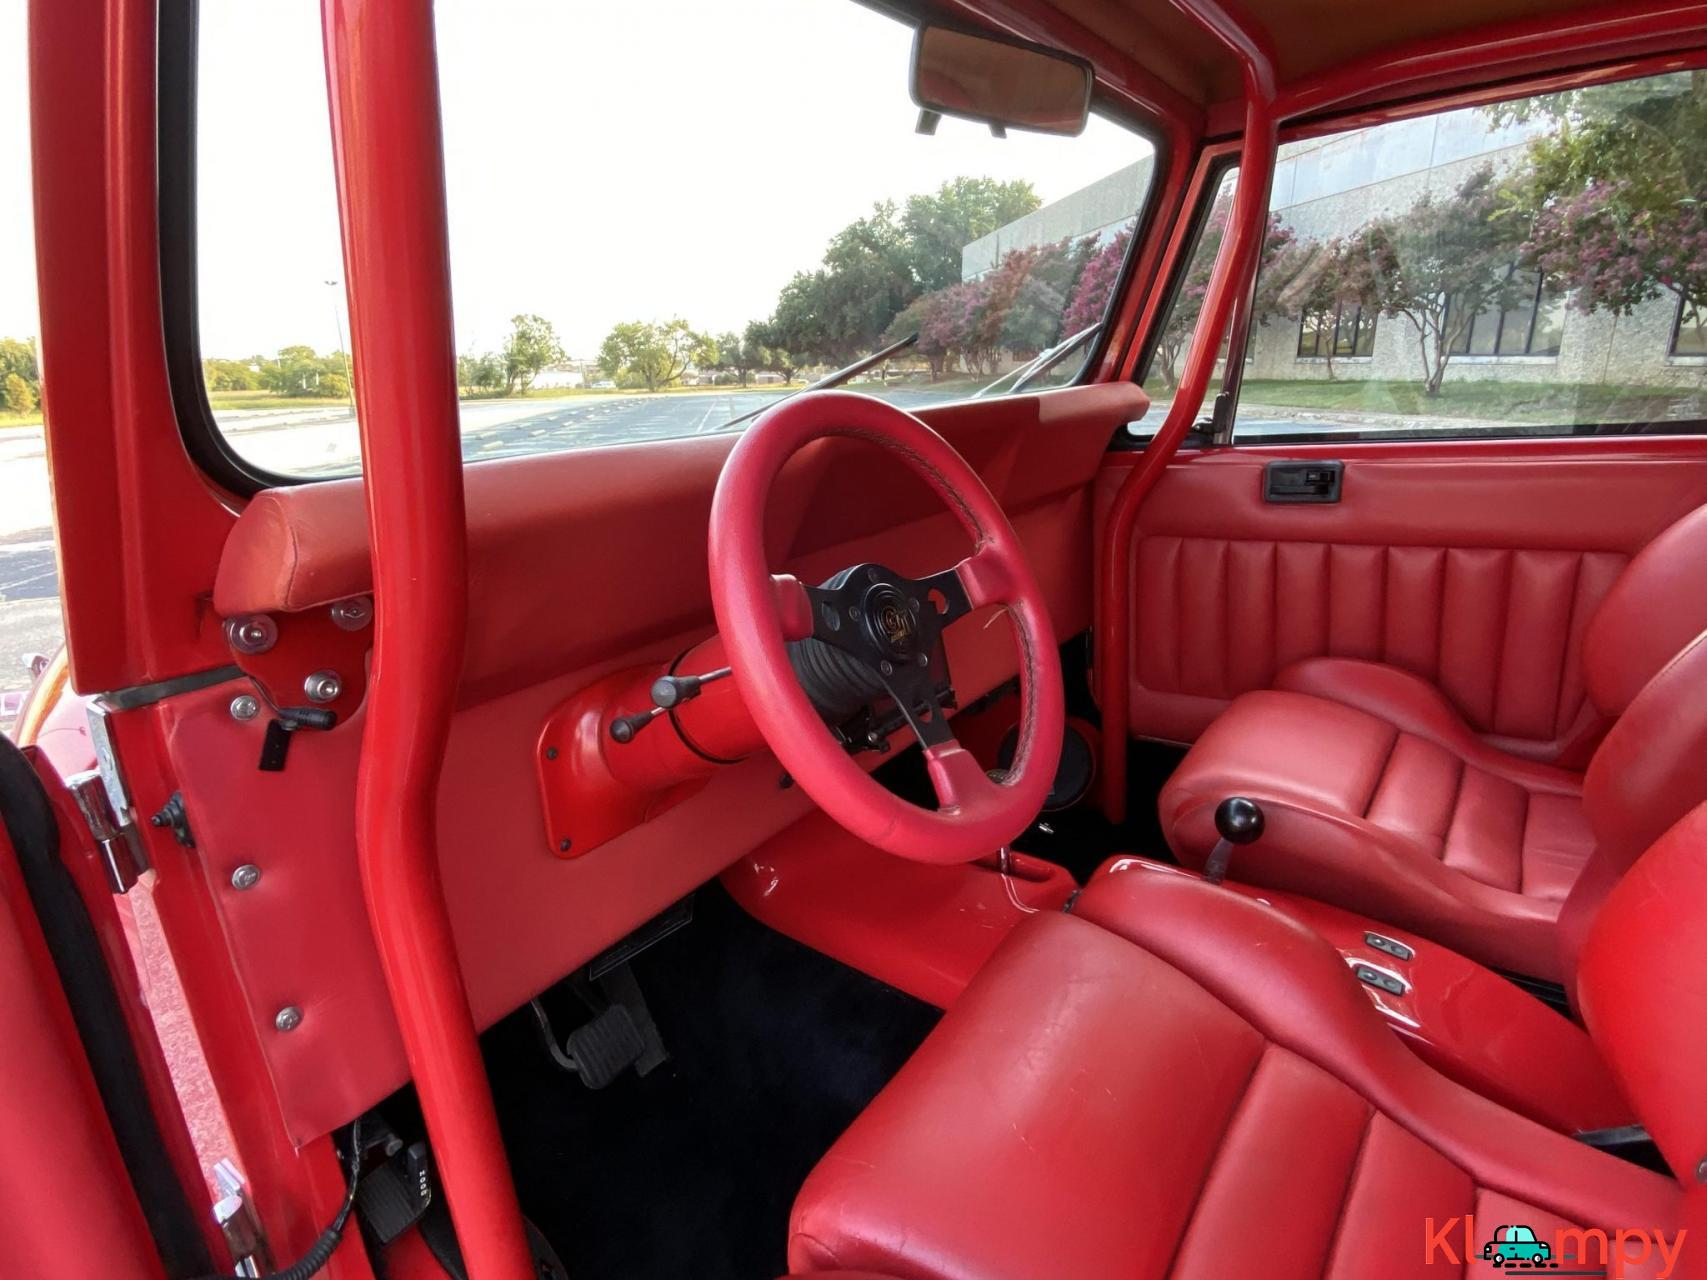 1983 Jeep CJ-7 Supercharged 350 V8 - 11/20